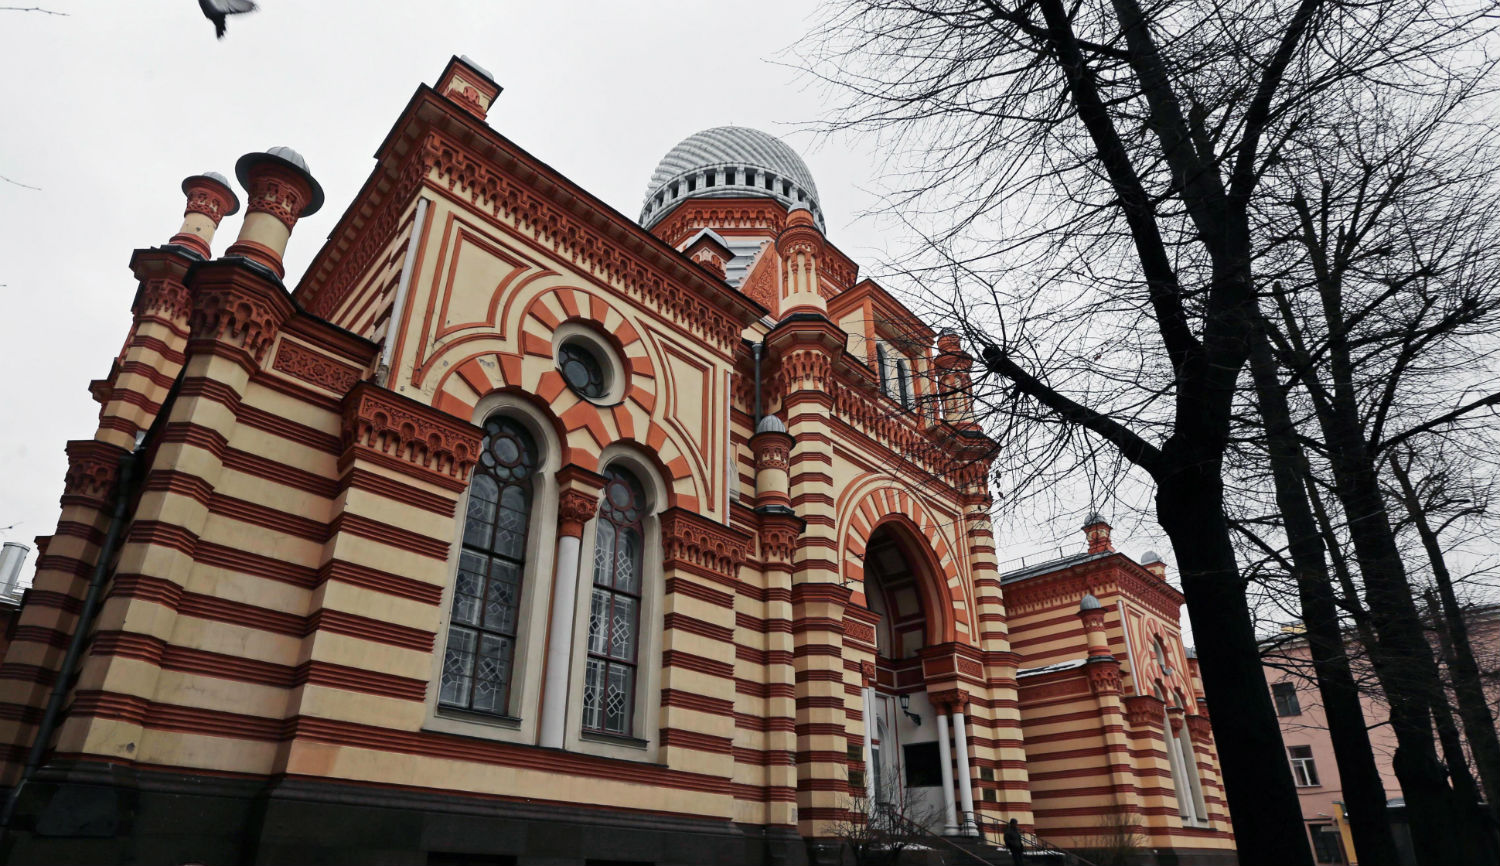 The Grand Choral Synagogue in St. Petersburg, Russia. Alexander DemianchukTASS via Getty Images).